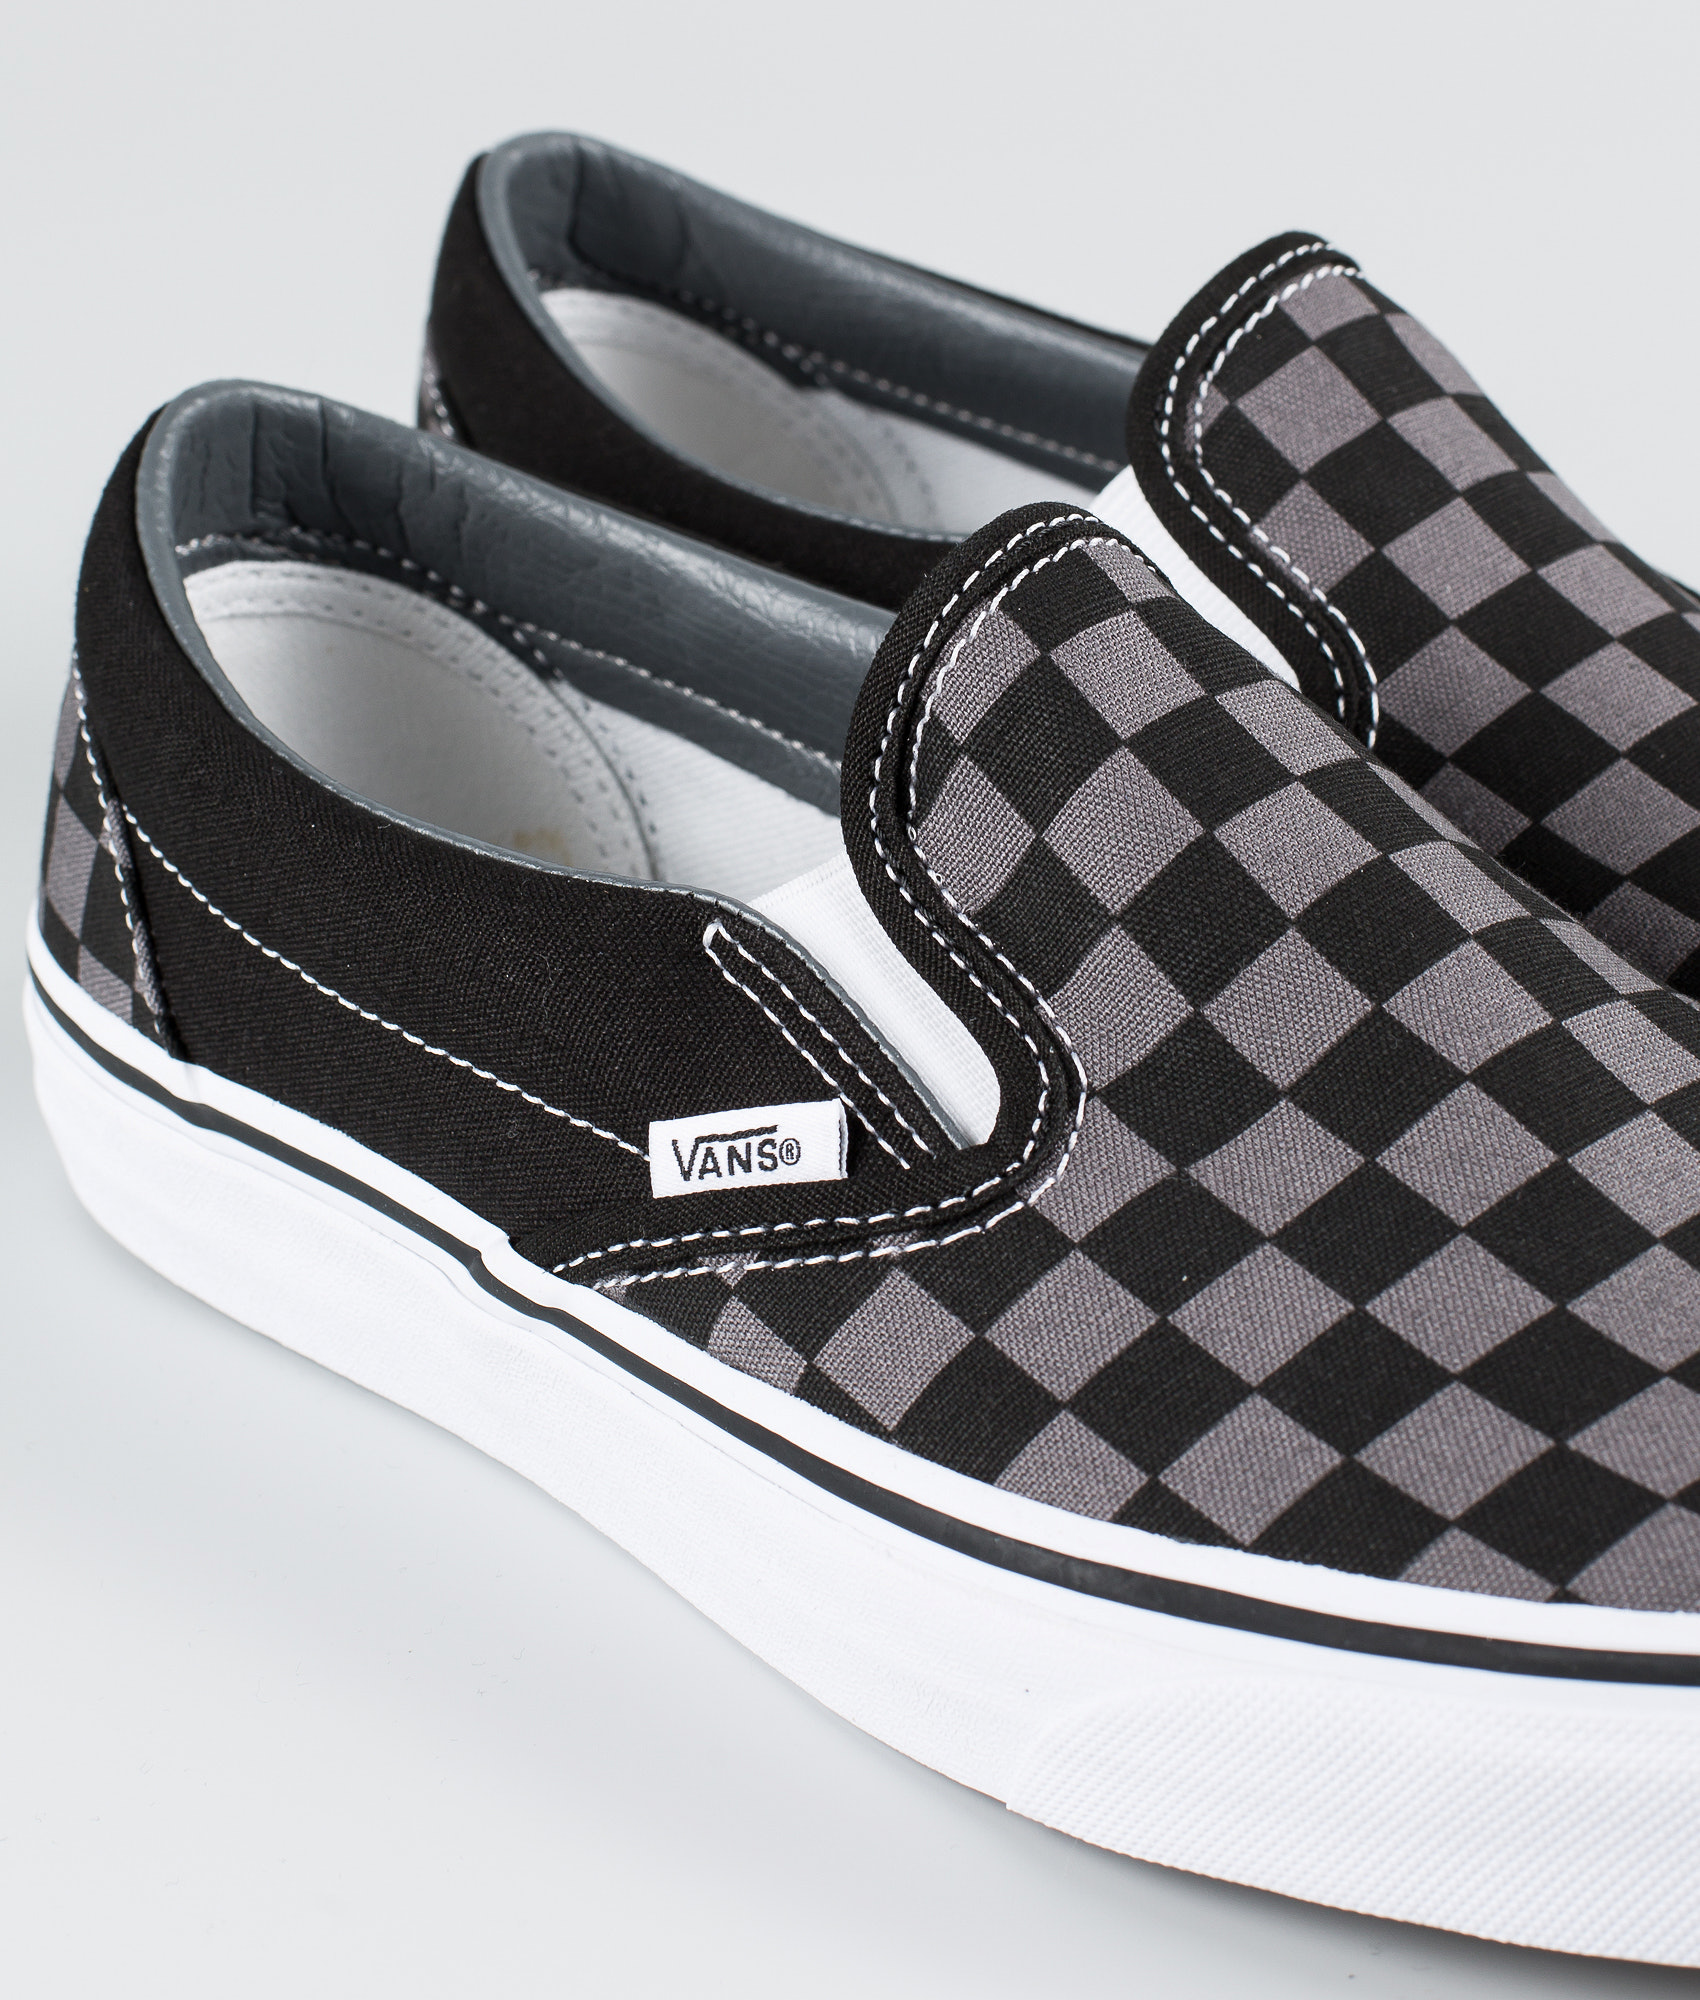 9d4cf86314 Vans Classic Slip-On Shoes Black Pewter Checkerboard - Ridestore.com